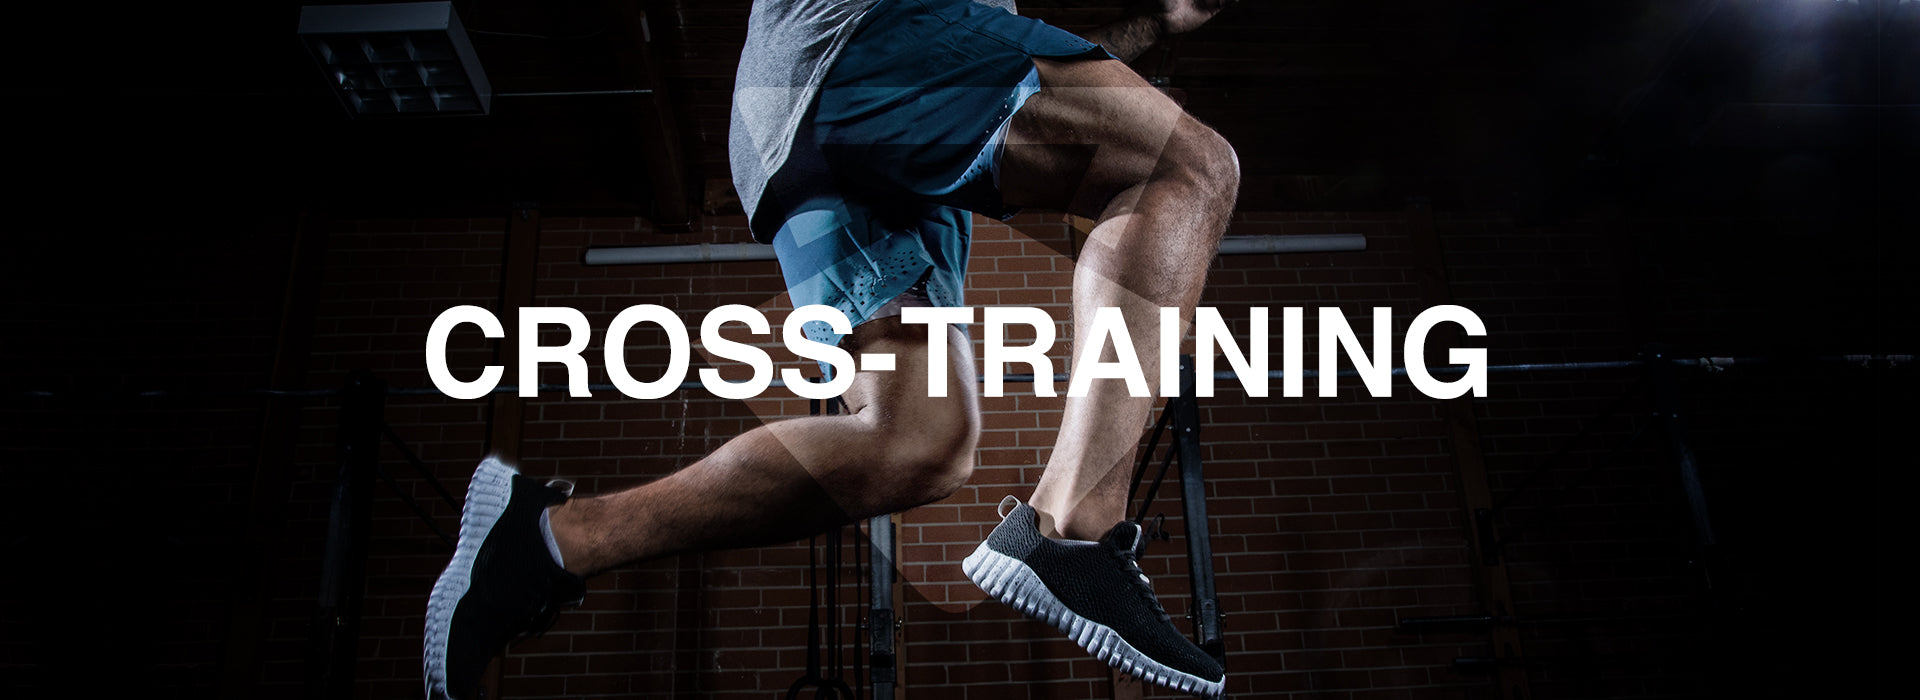 Men-Crosstraining-functionalfitness-activewear